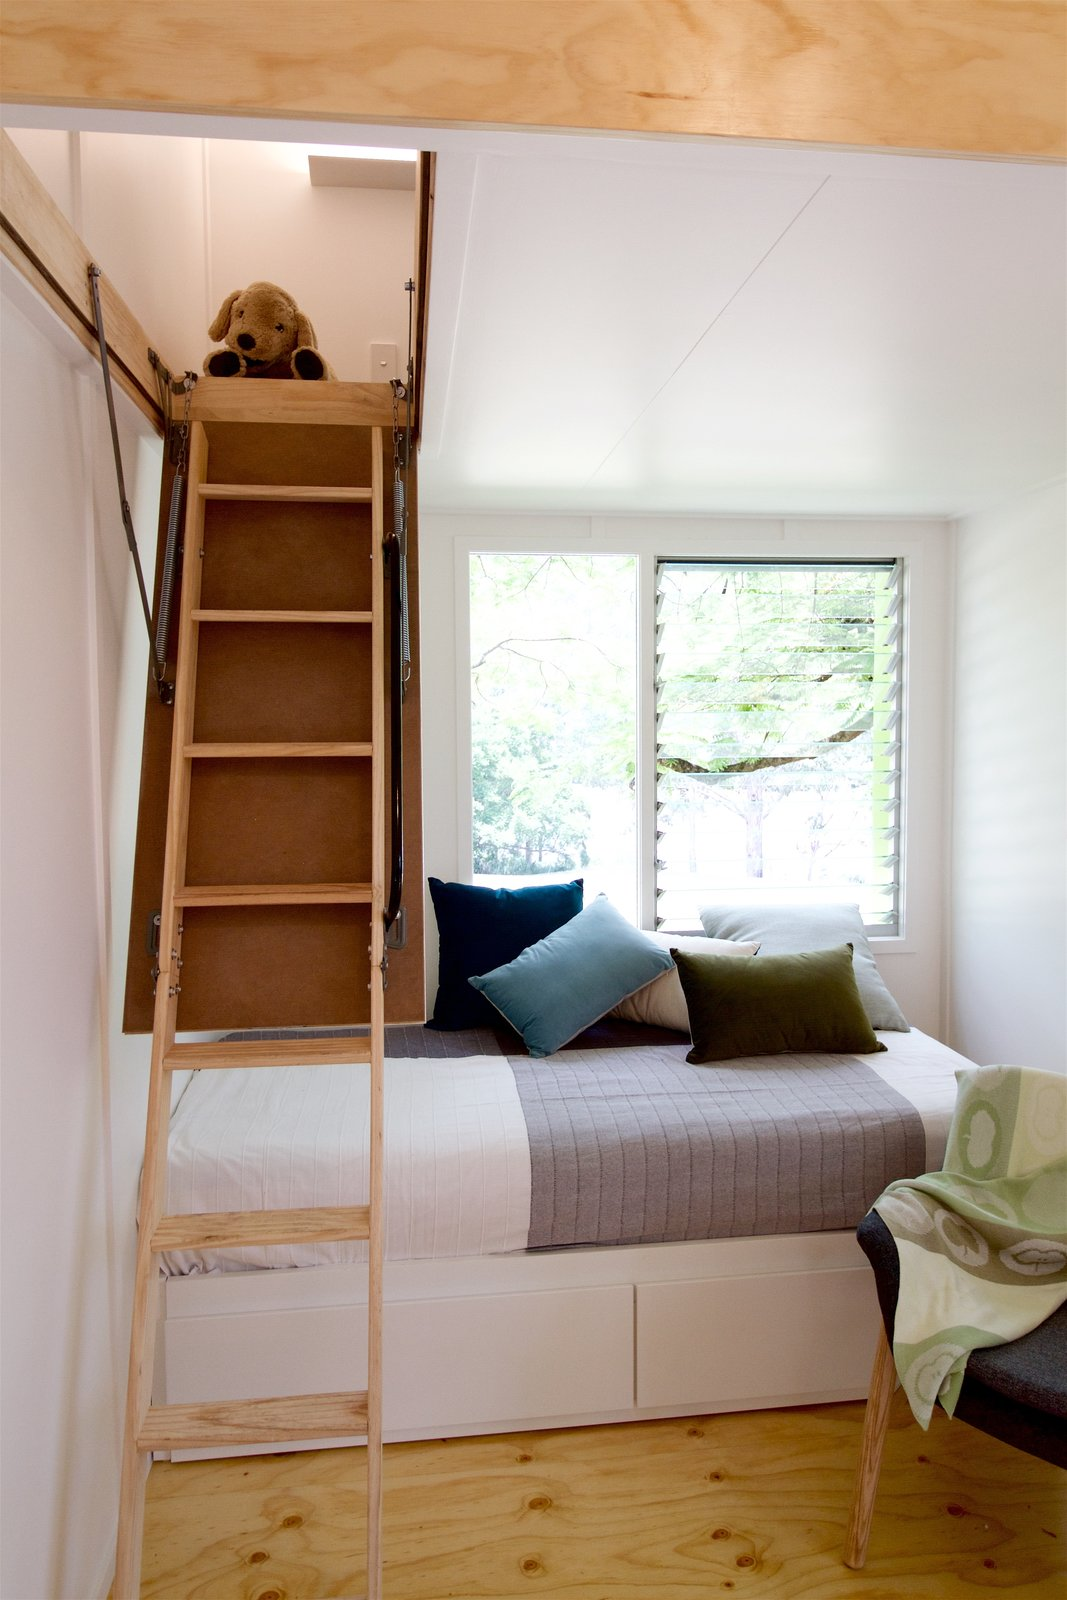 A retractable ladder, and no built-in furniture or cabinetry in the main living area makes a range of layouts and arrangements possible.